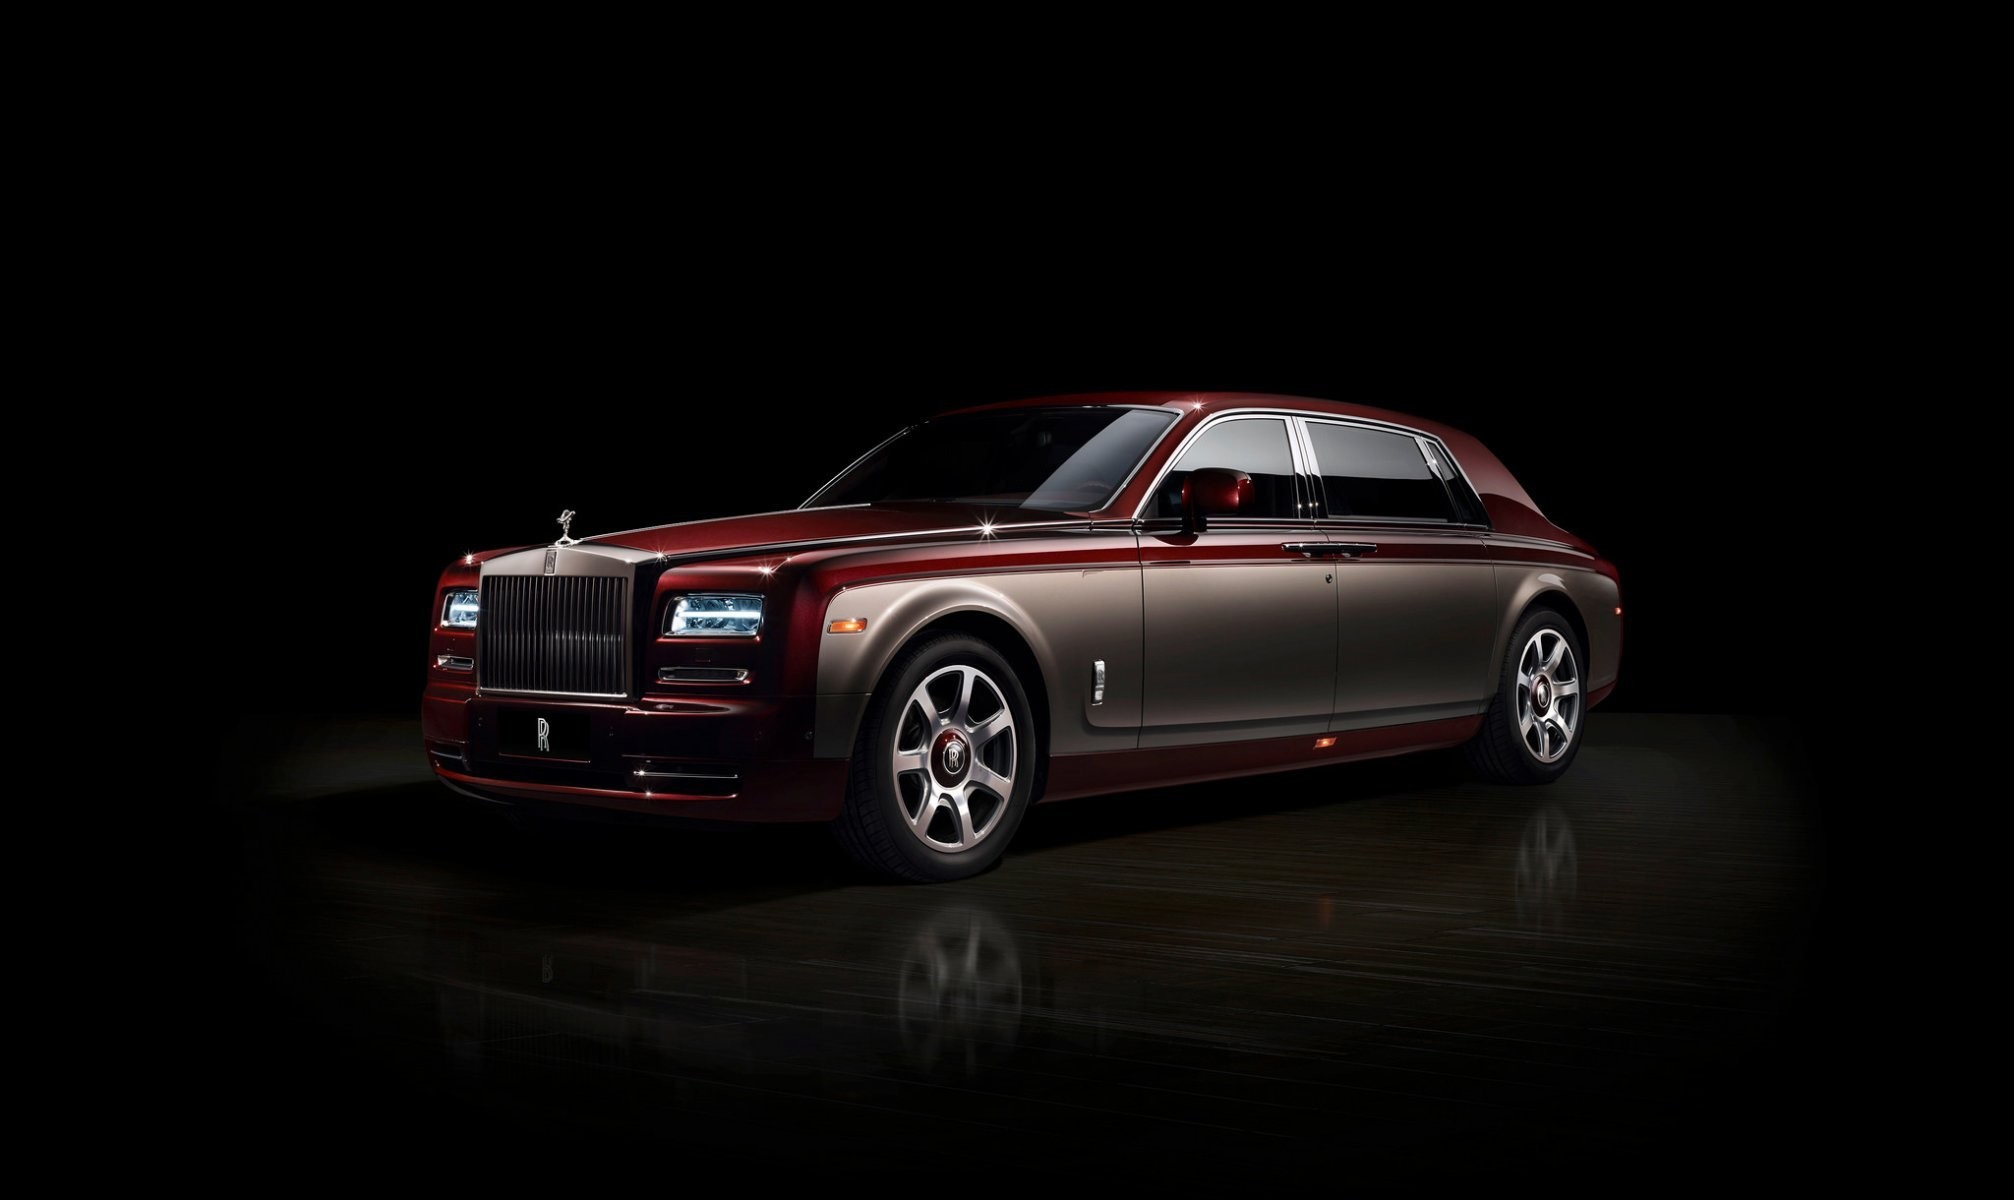 2014x1200 rolls royce phantom pinnacle travel black background